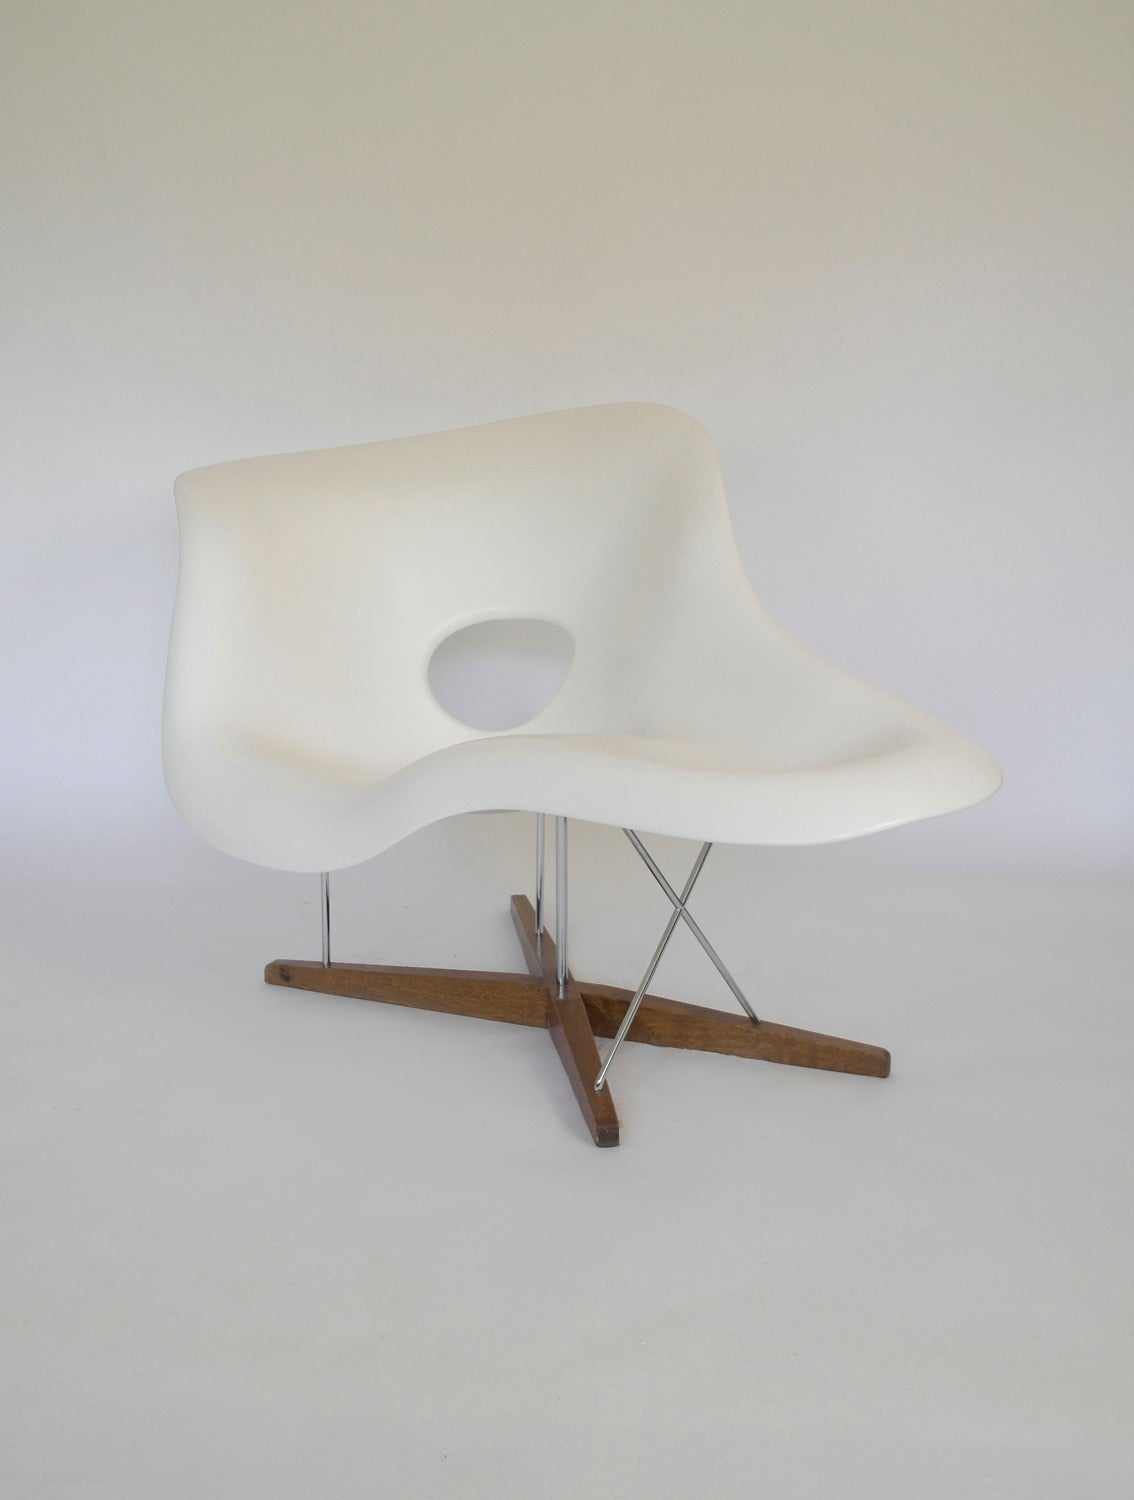 Vitra edition la chaise by charles ray eames image 5 for Chaise ray eames